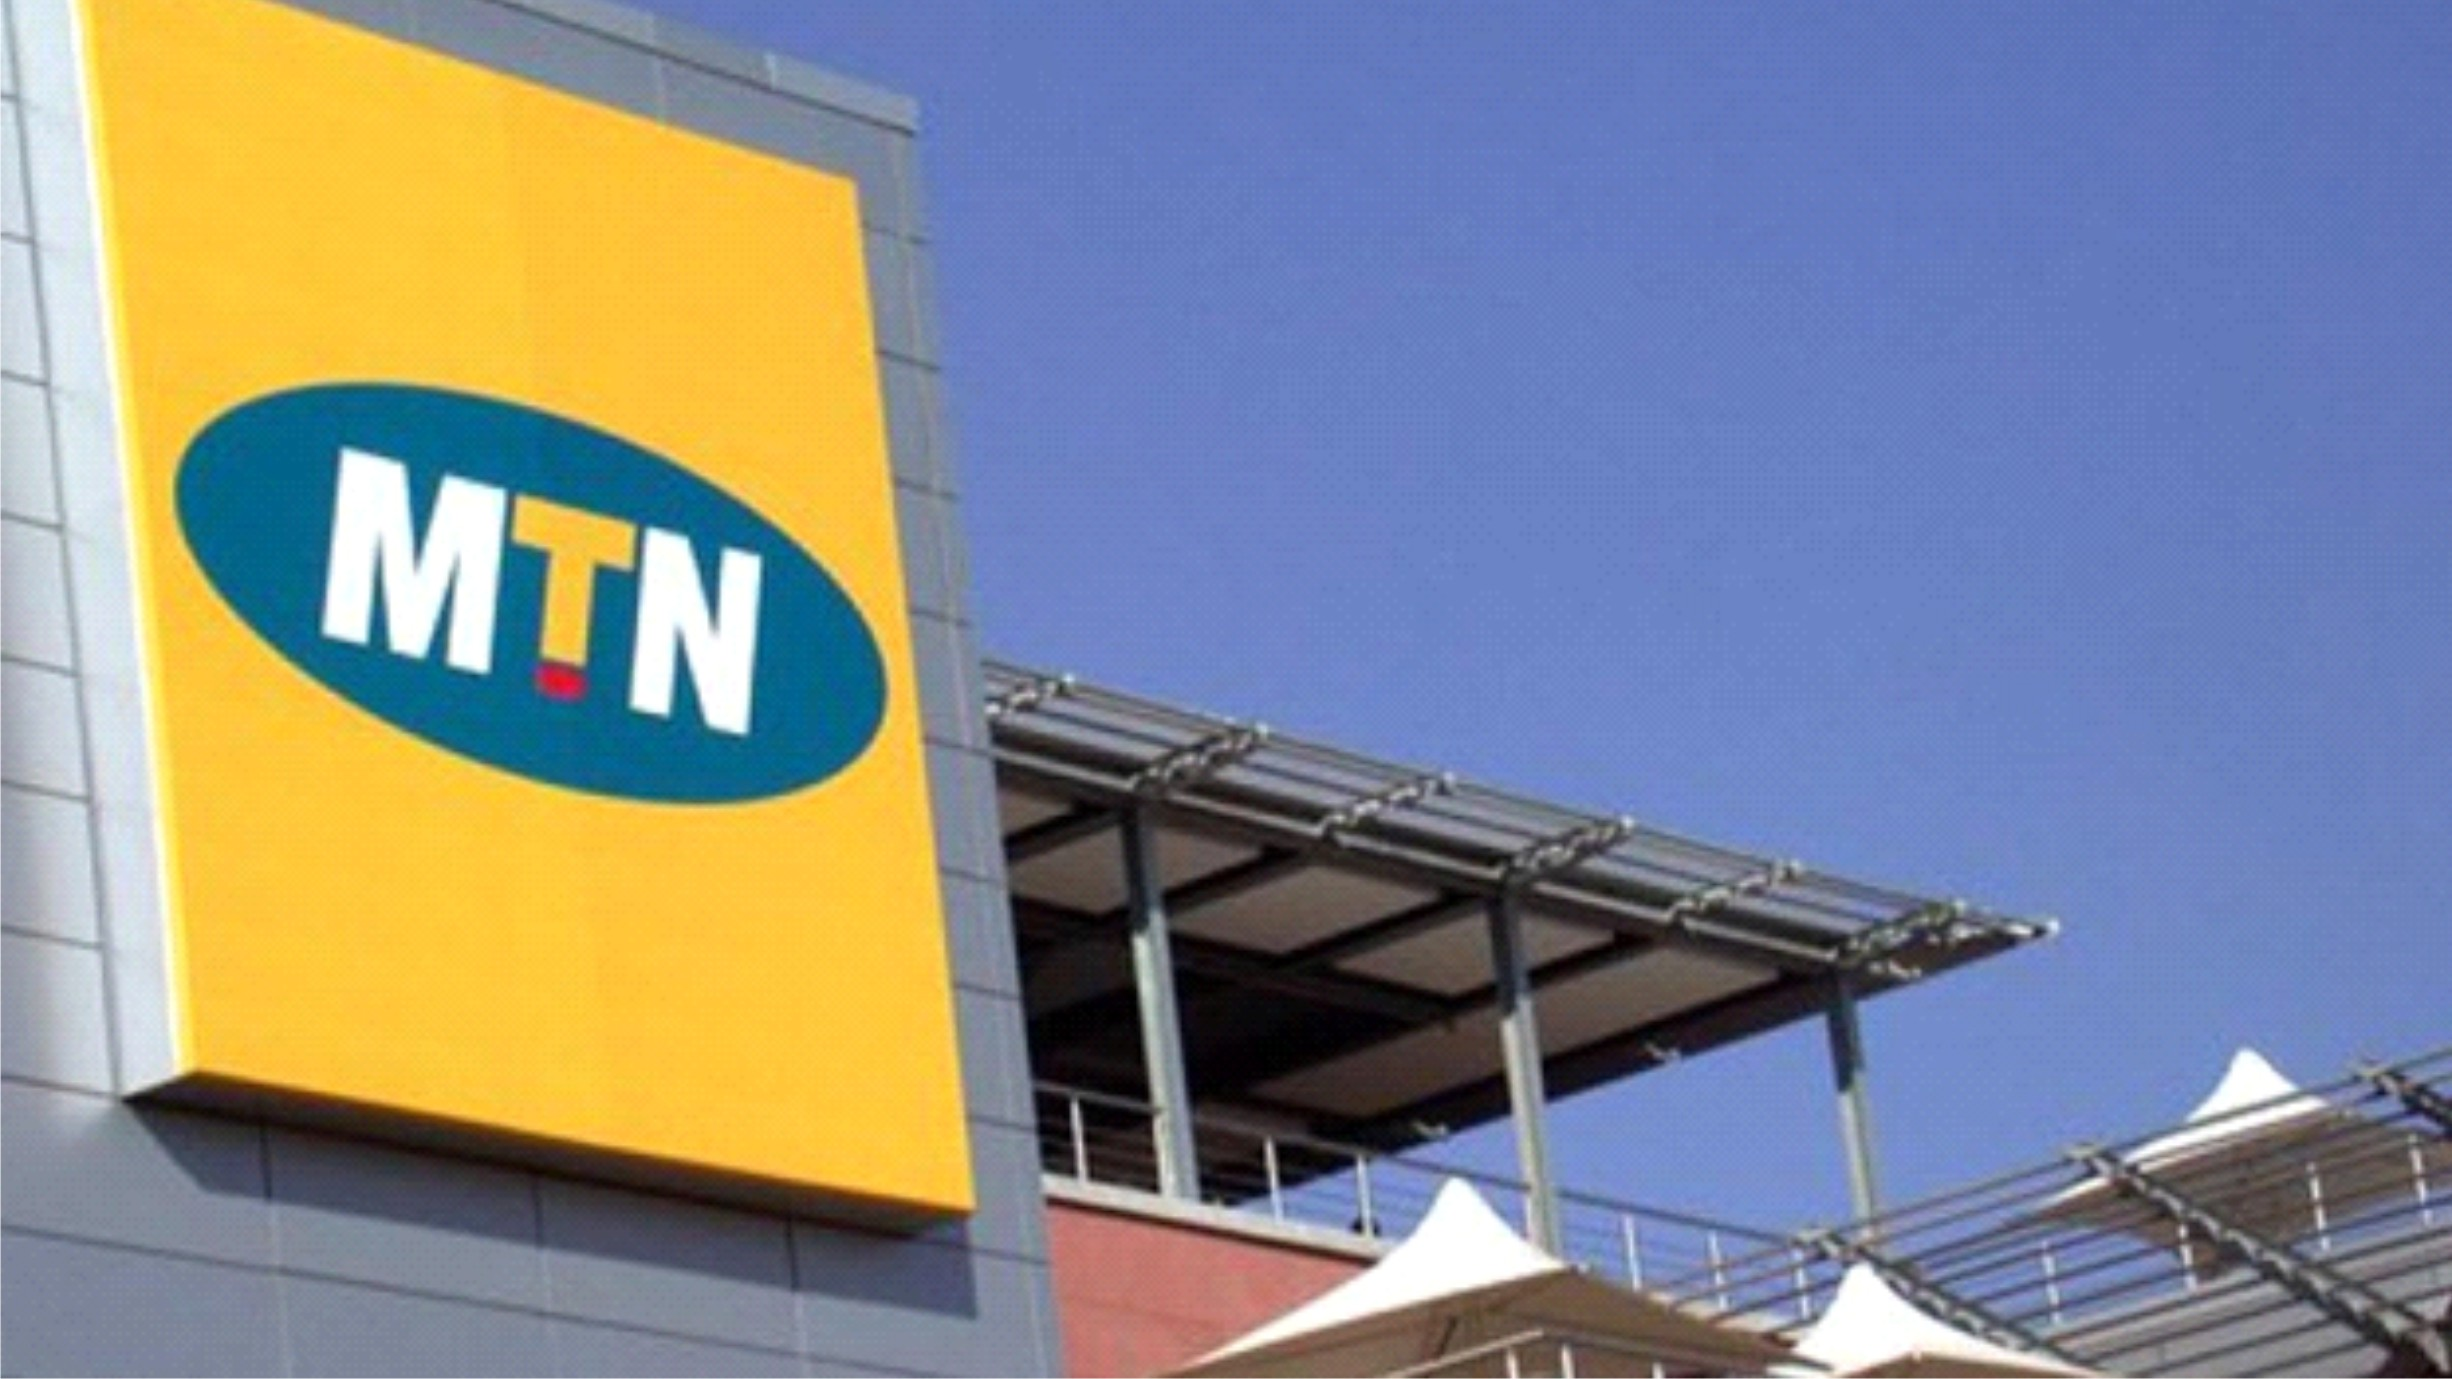 MTN rides on exclusive data services as revenue climbs